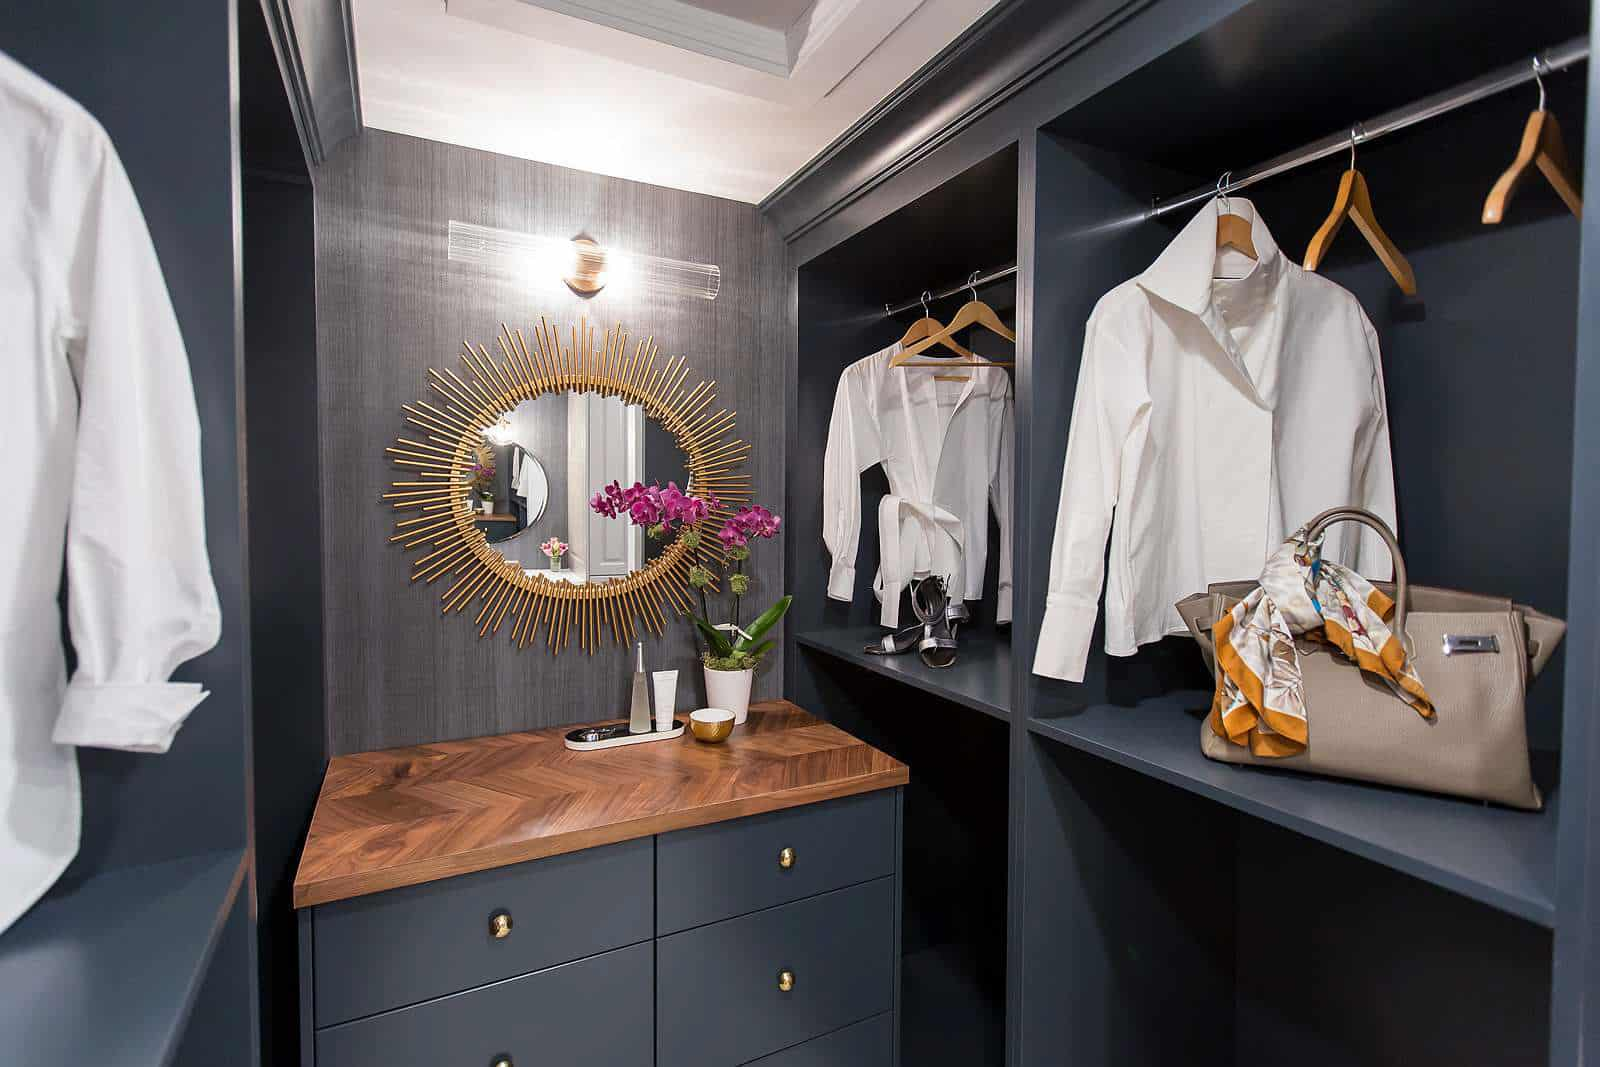 Master bathroom with custom built-in vanity in Benjamin Moore Storm, delta trinsic faucet in bronze, Mateo double globe black and brass wall sconce, soaker tub and geometric floor tile and custom upholstered bench blue wool striae and Woeller Group grasscloth wallpaper.